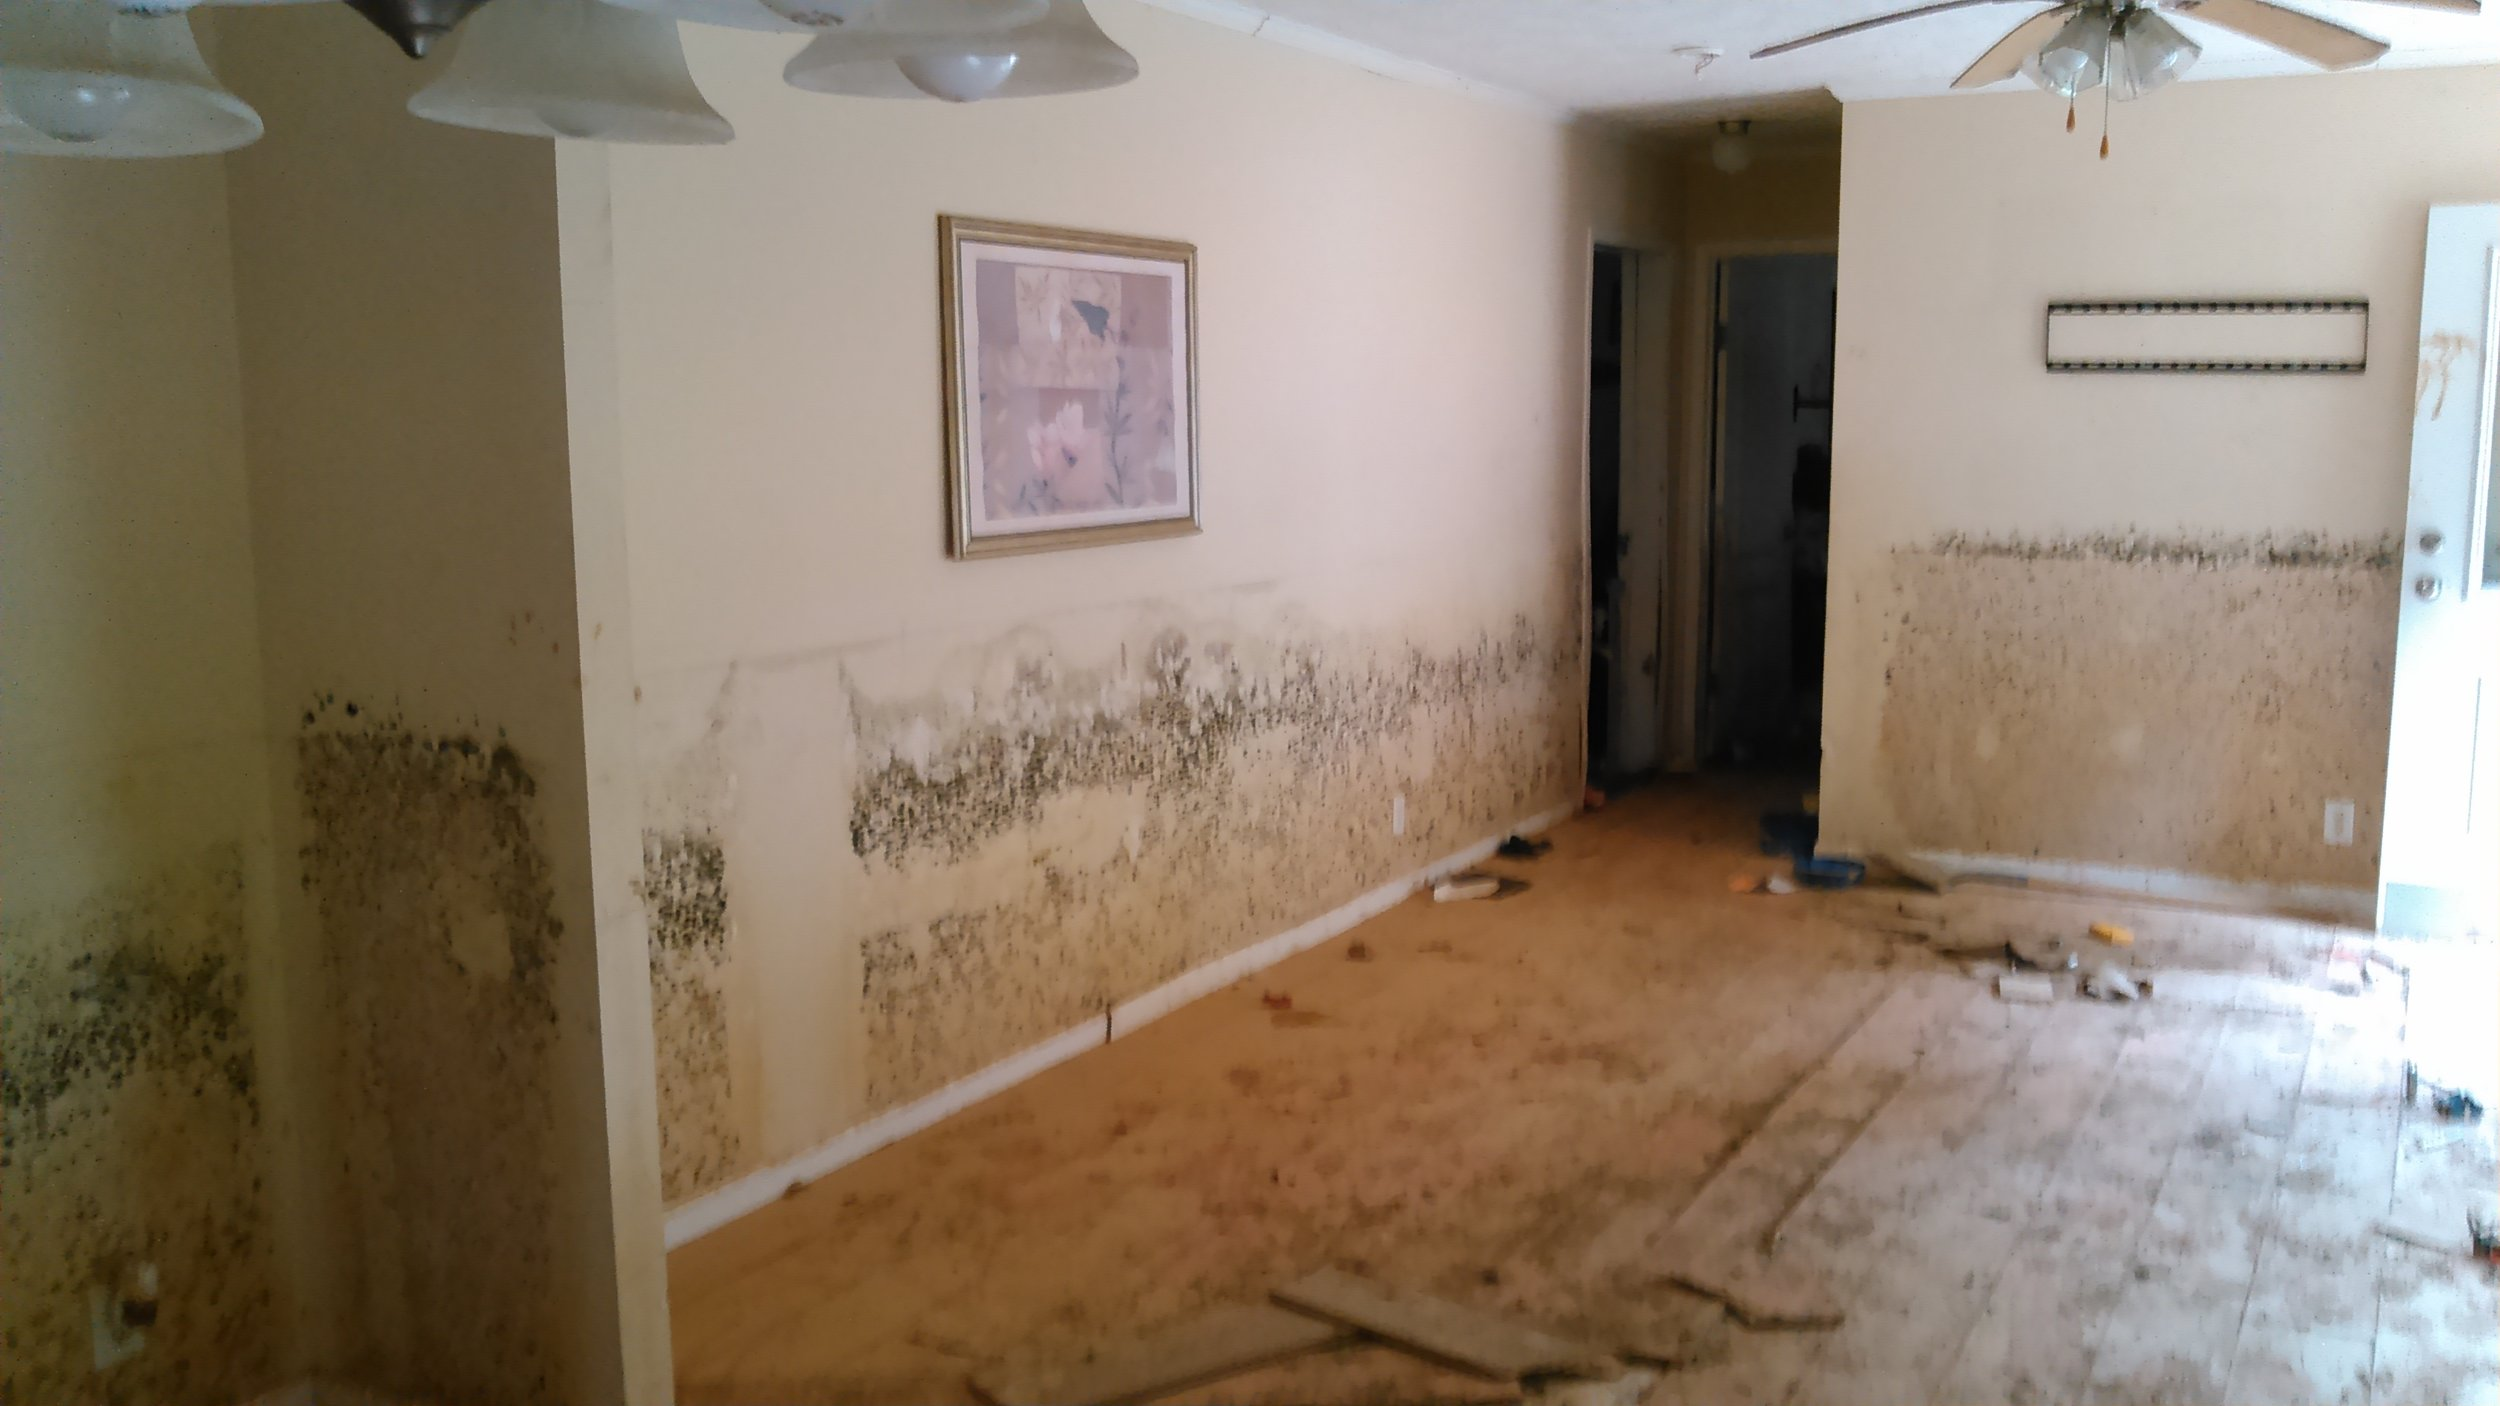 This shows the typical mold growth we encountered in many of the homes we cleaned out.